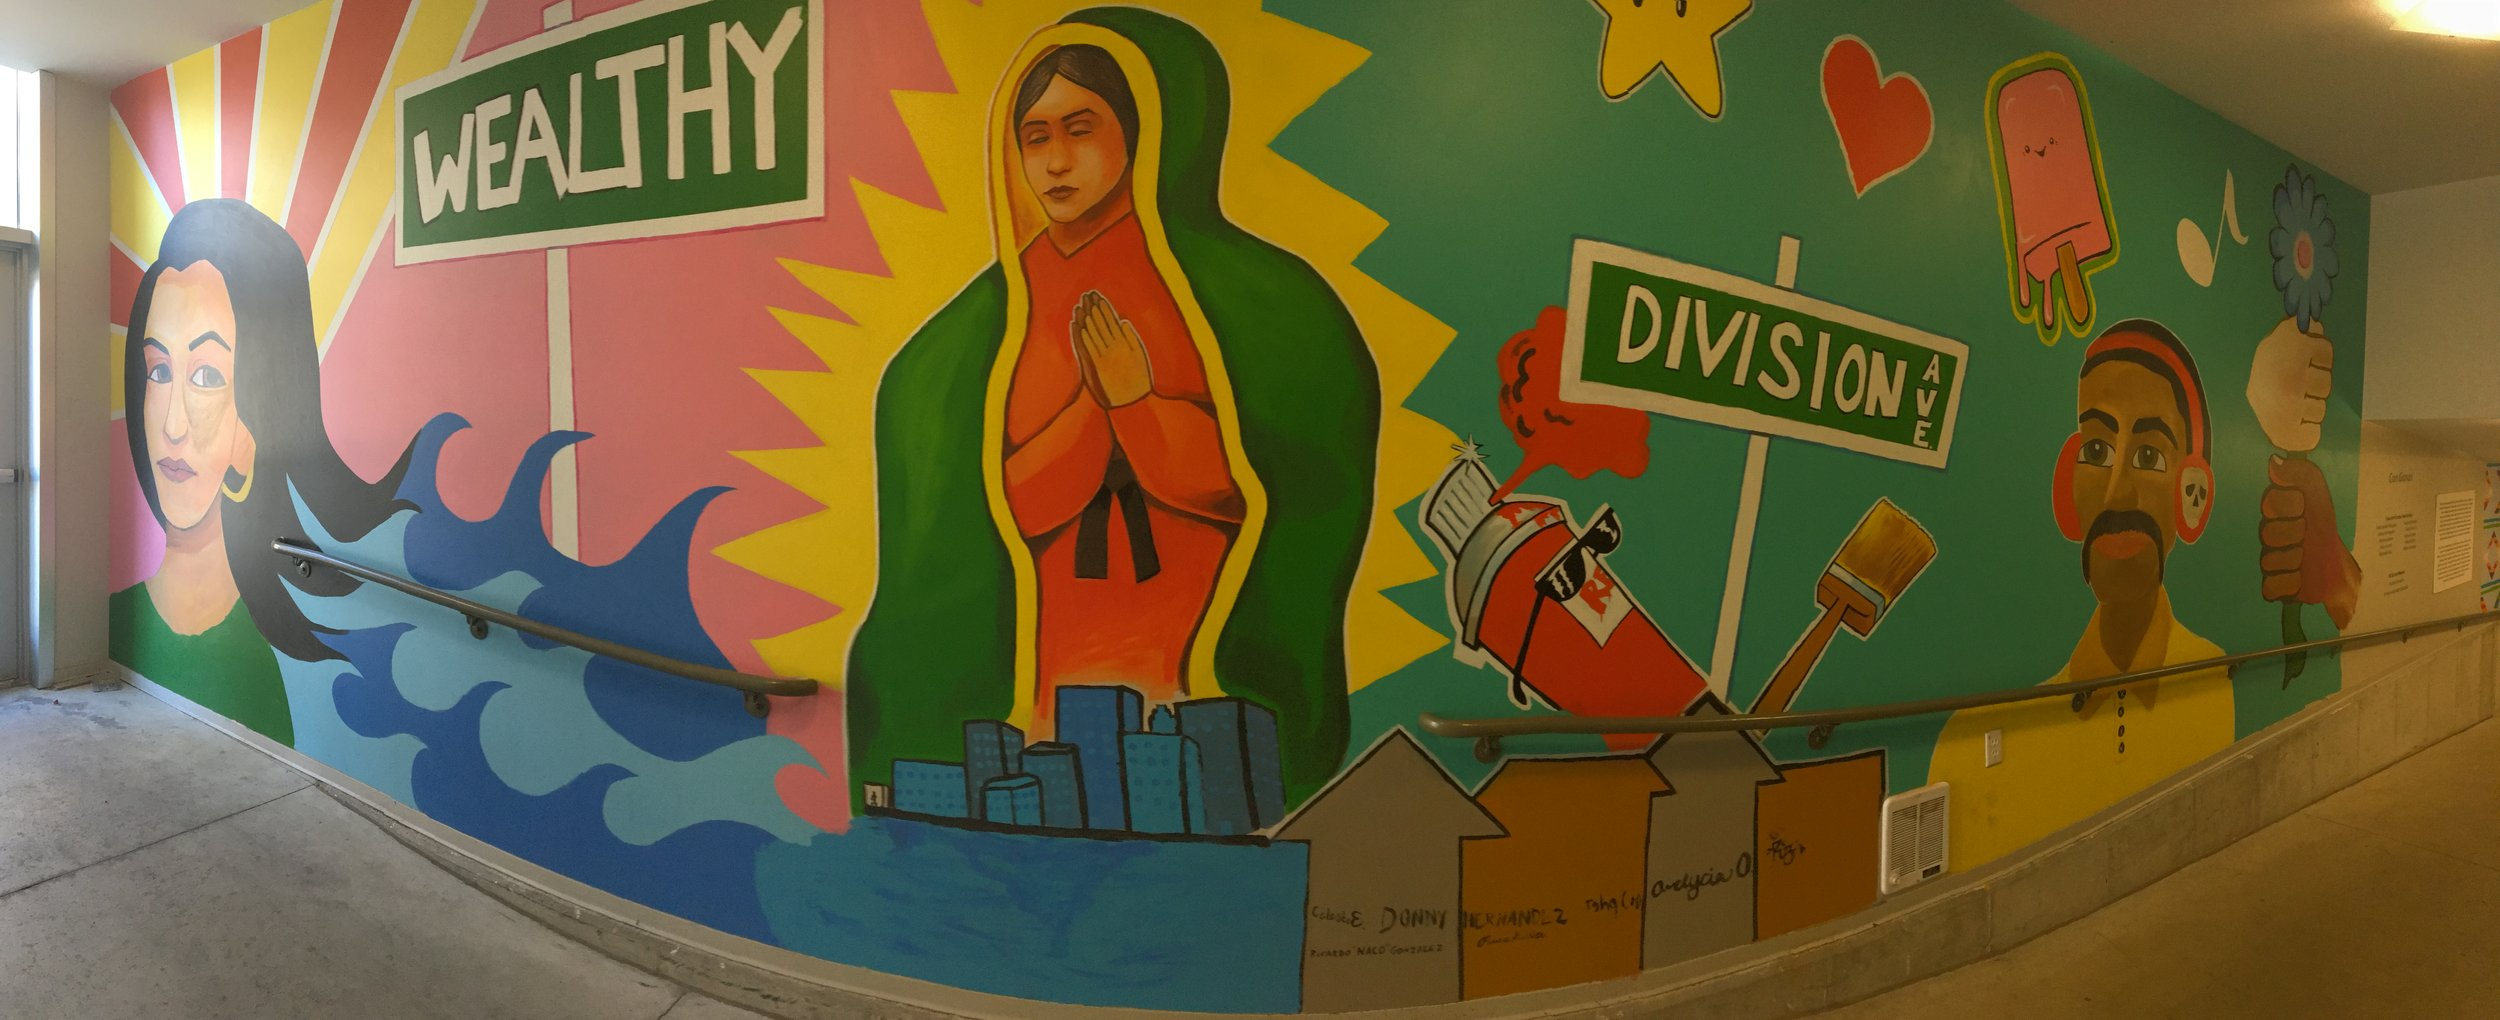 Multicultural mural in Gallery parking ramp (panoramic view)